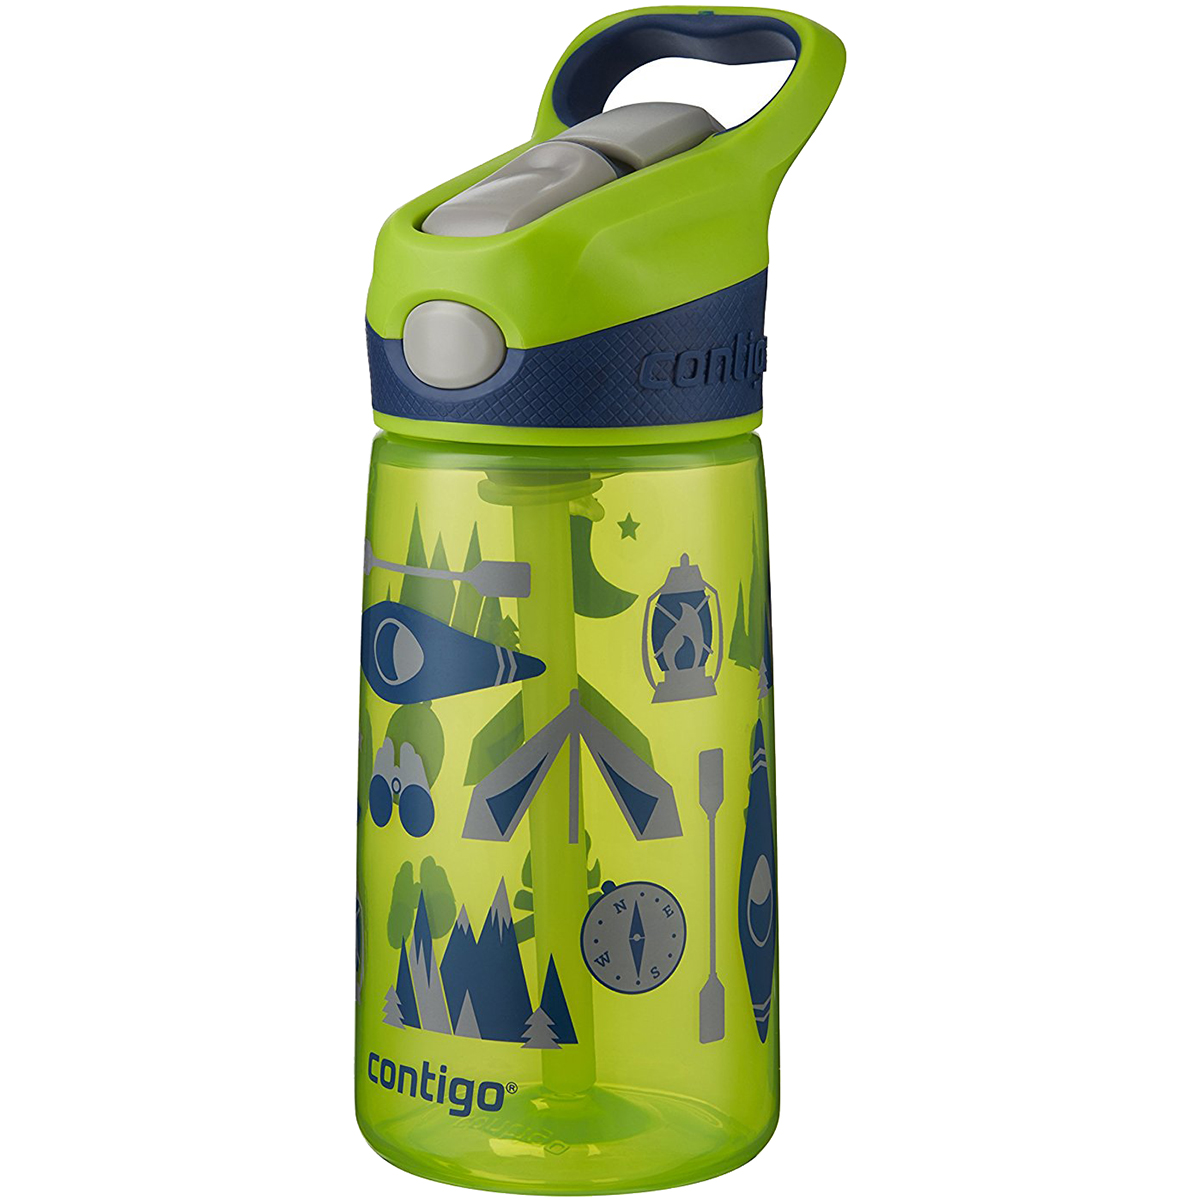 Contigo-14-oz-Kid-039-s-Striker-Autospout-Water-Bottle miniature 15